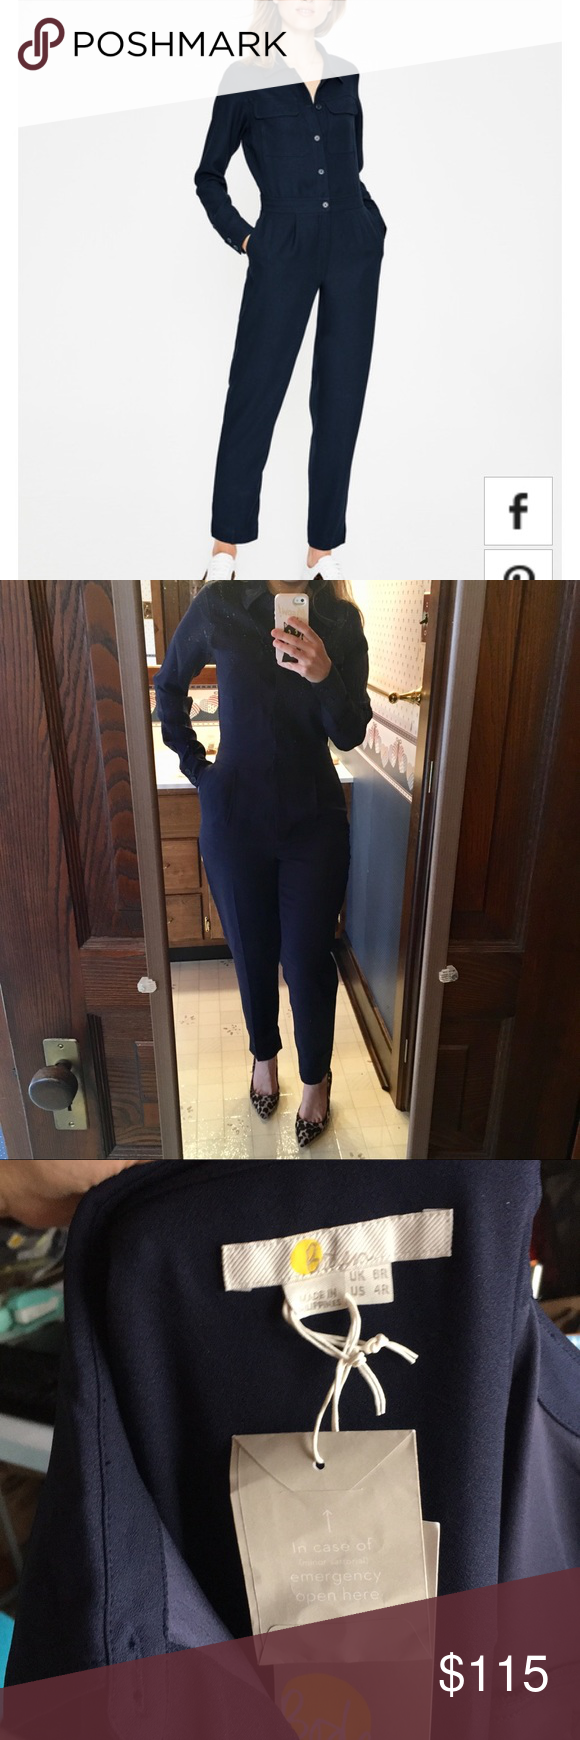 bbc5e8379a7 New Boden Zada jumpsuit long sleeve navy 4 New with tags. Zada long sleeve  jumpsuit with pockets and zip fly and front buttons for easy on and off.